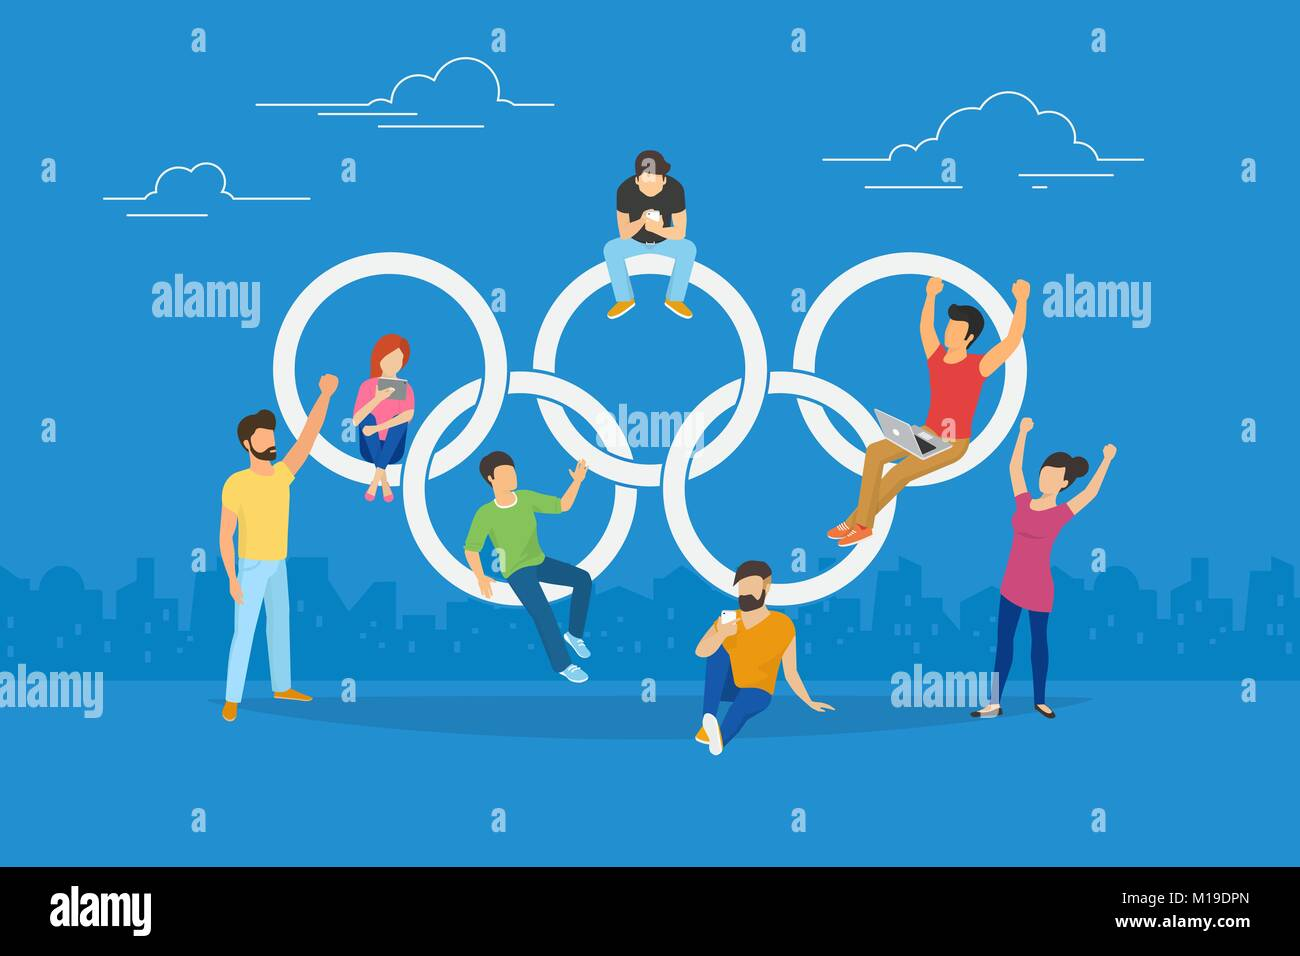 Vector illustration of Olympic rings and happy fans watching live stream - Stock Vector